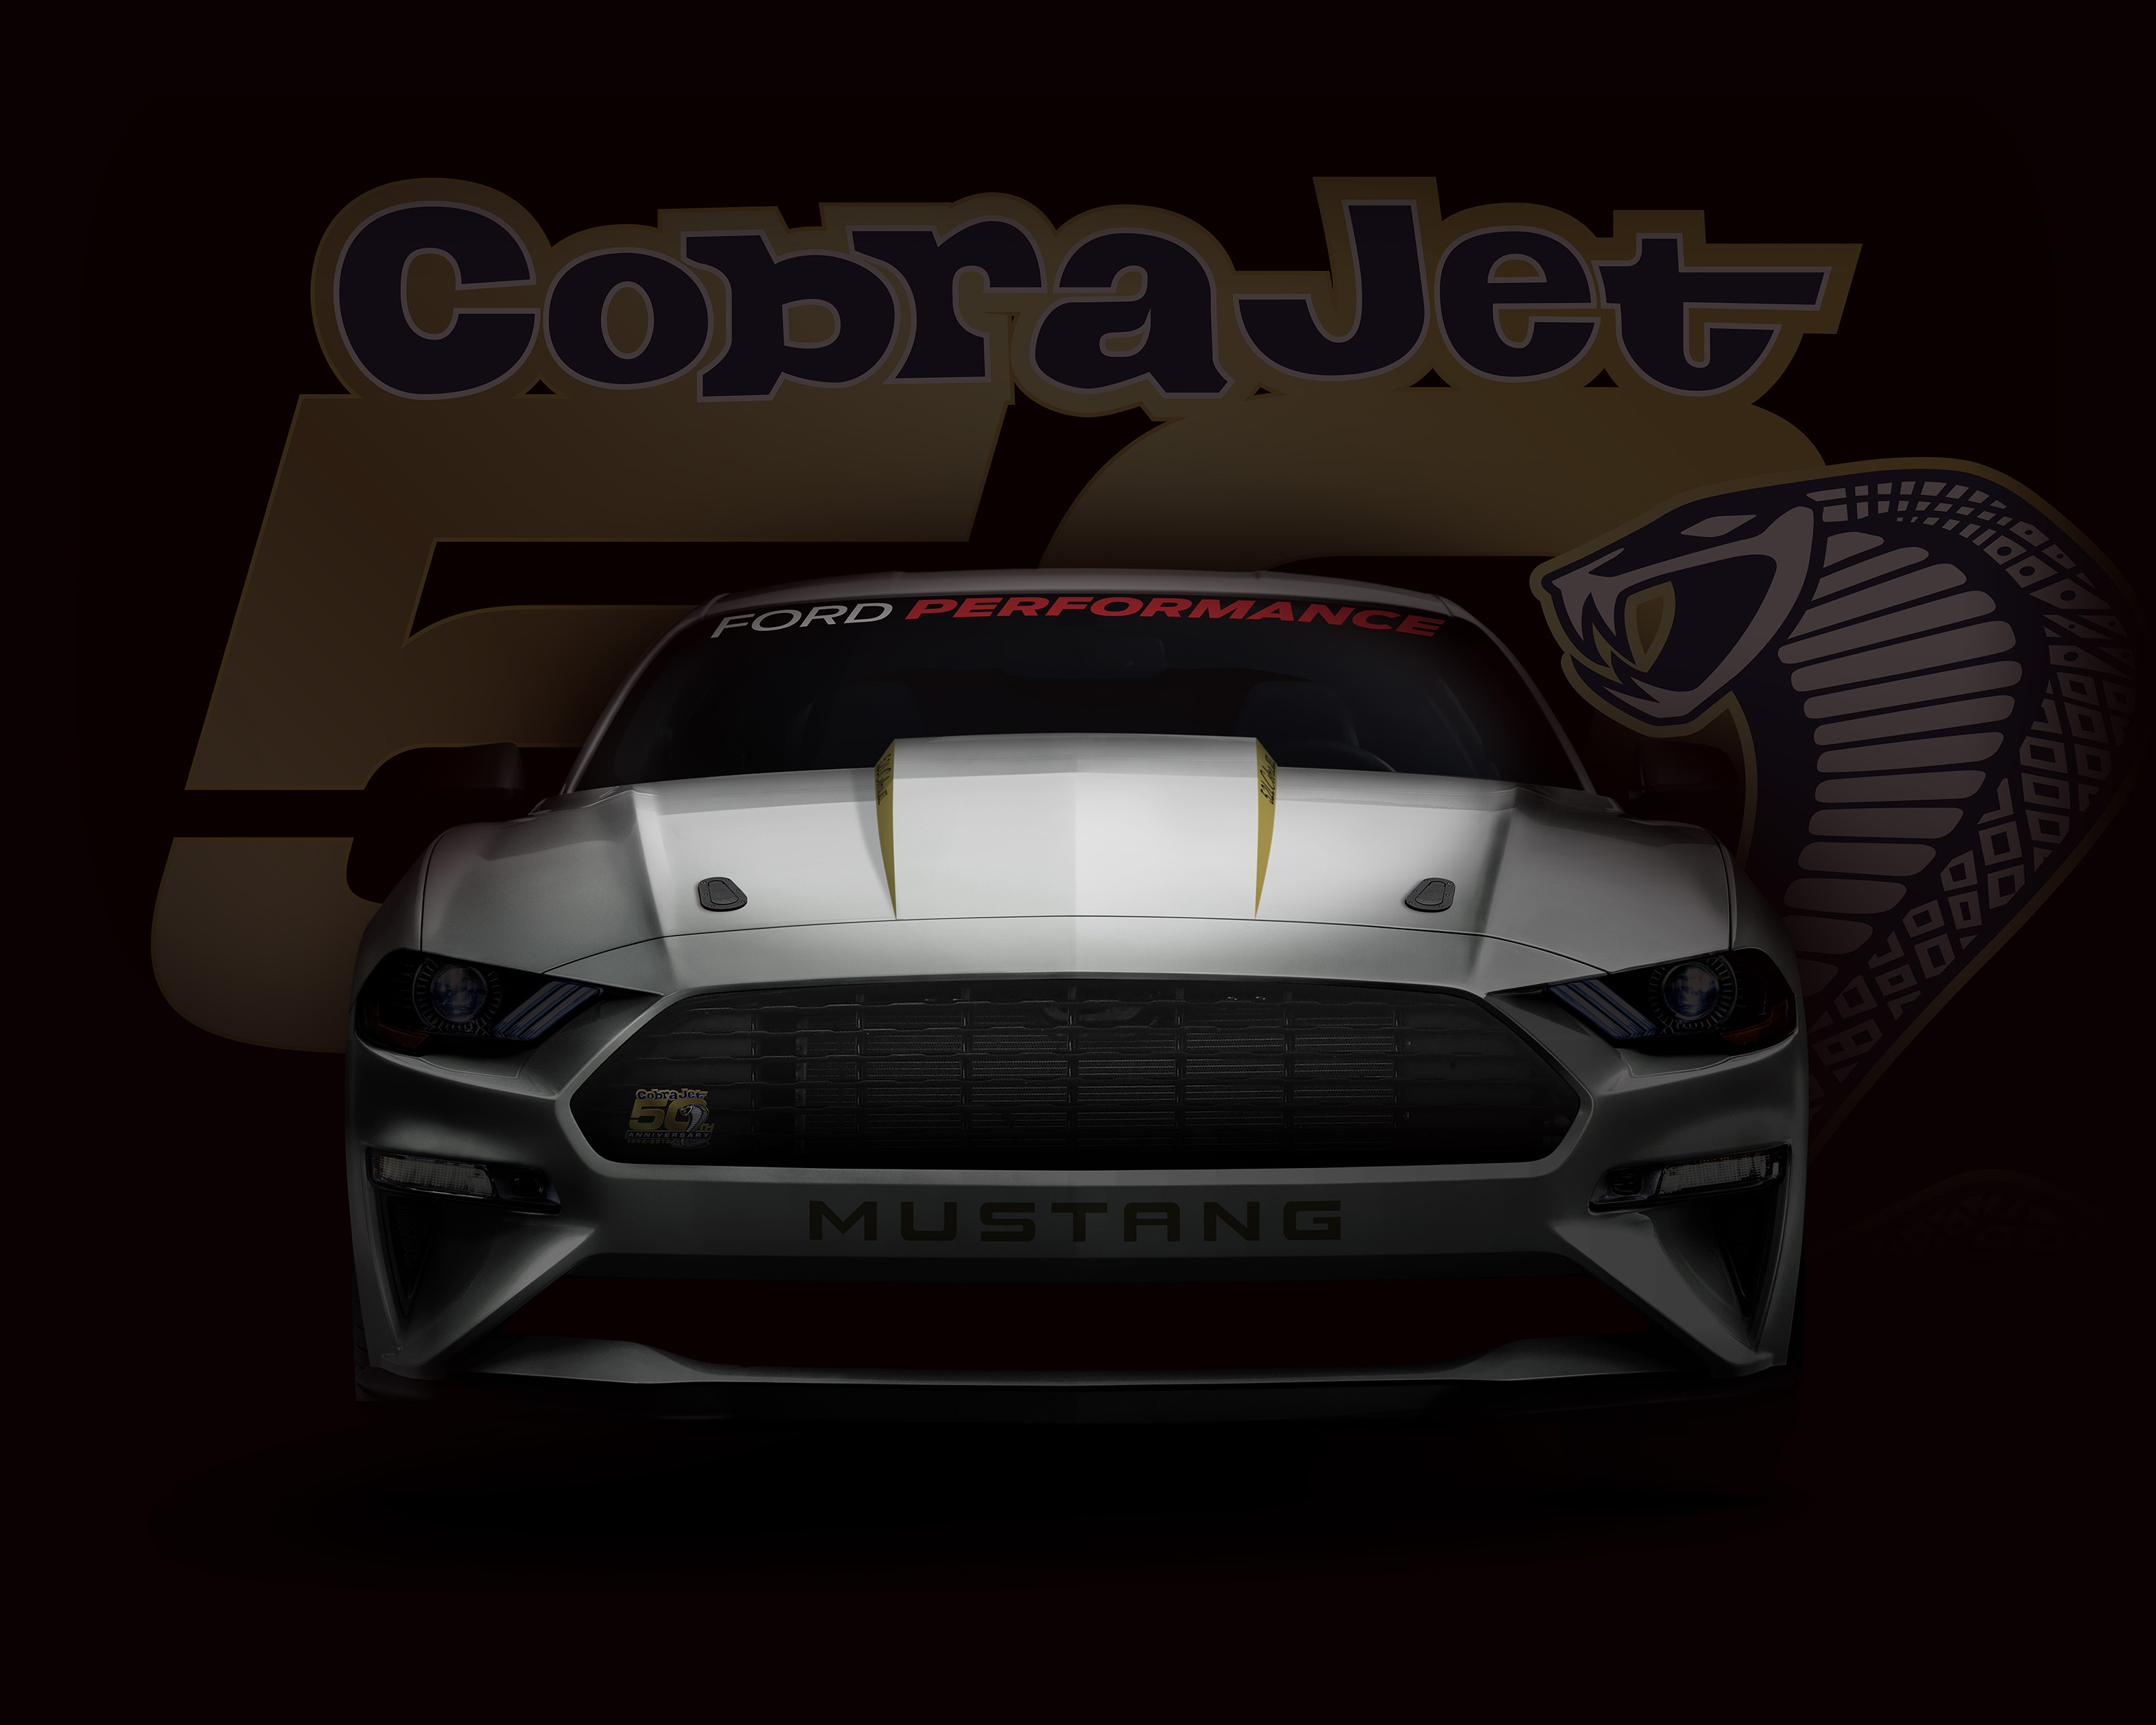 This artist's rendering teased the 2018 Ford Mustang Cobra Jet. | Ford Motor Company photo